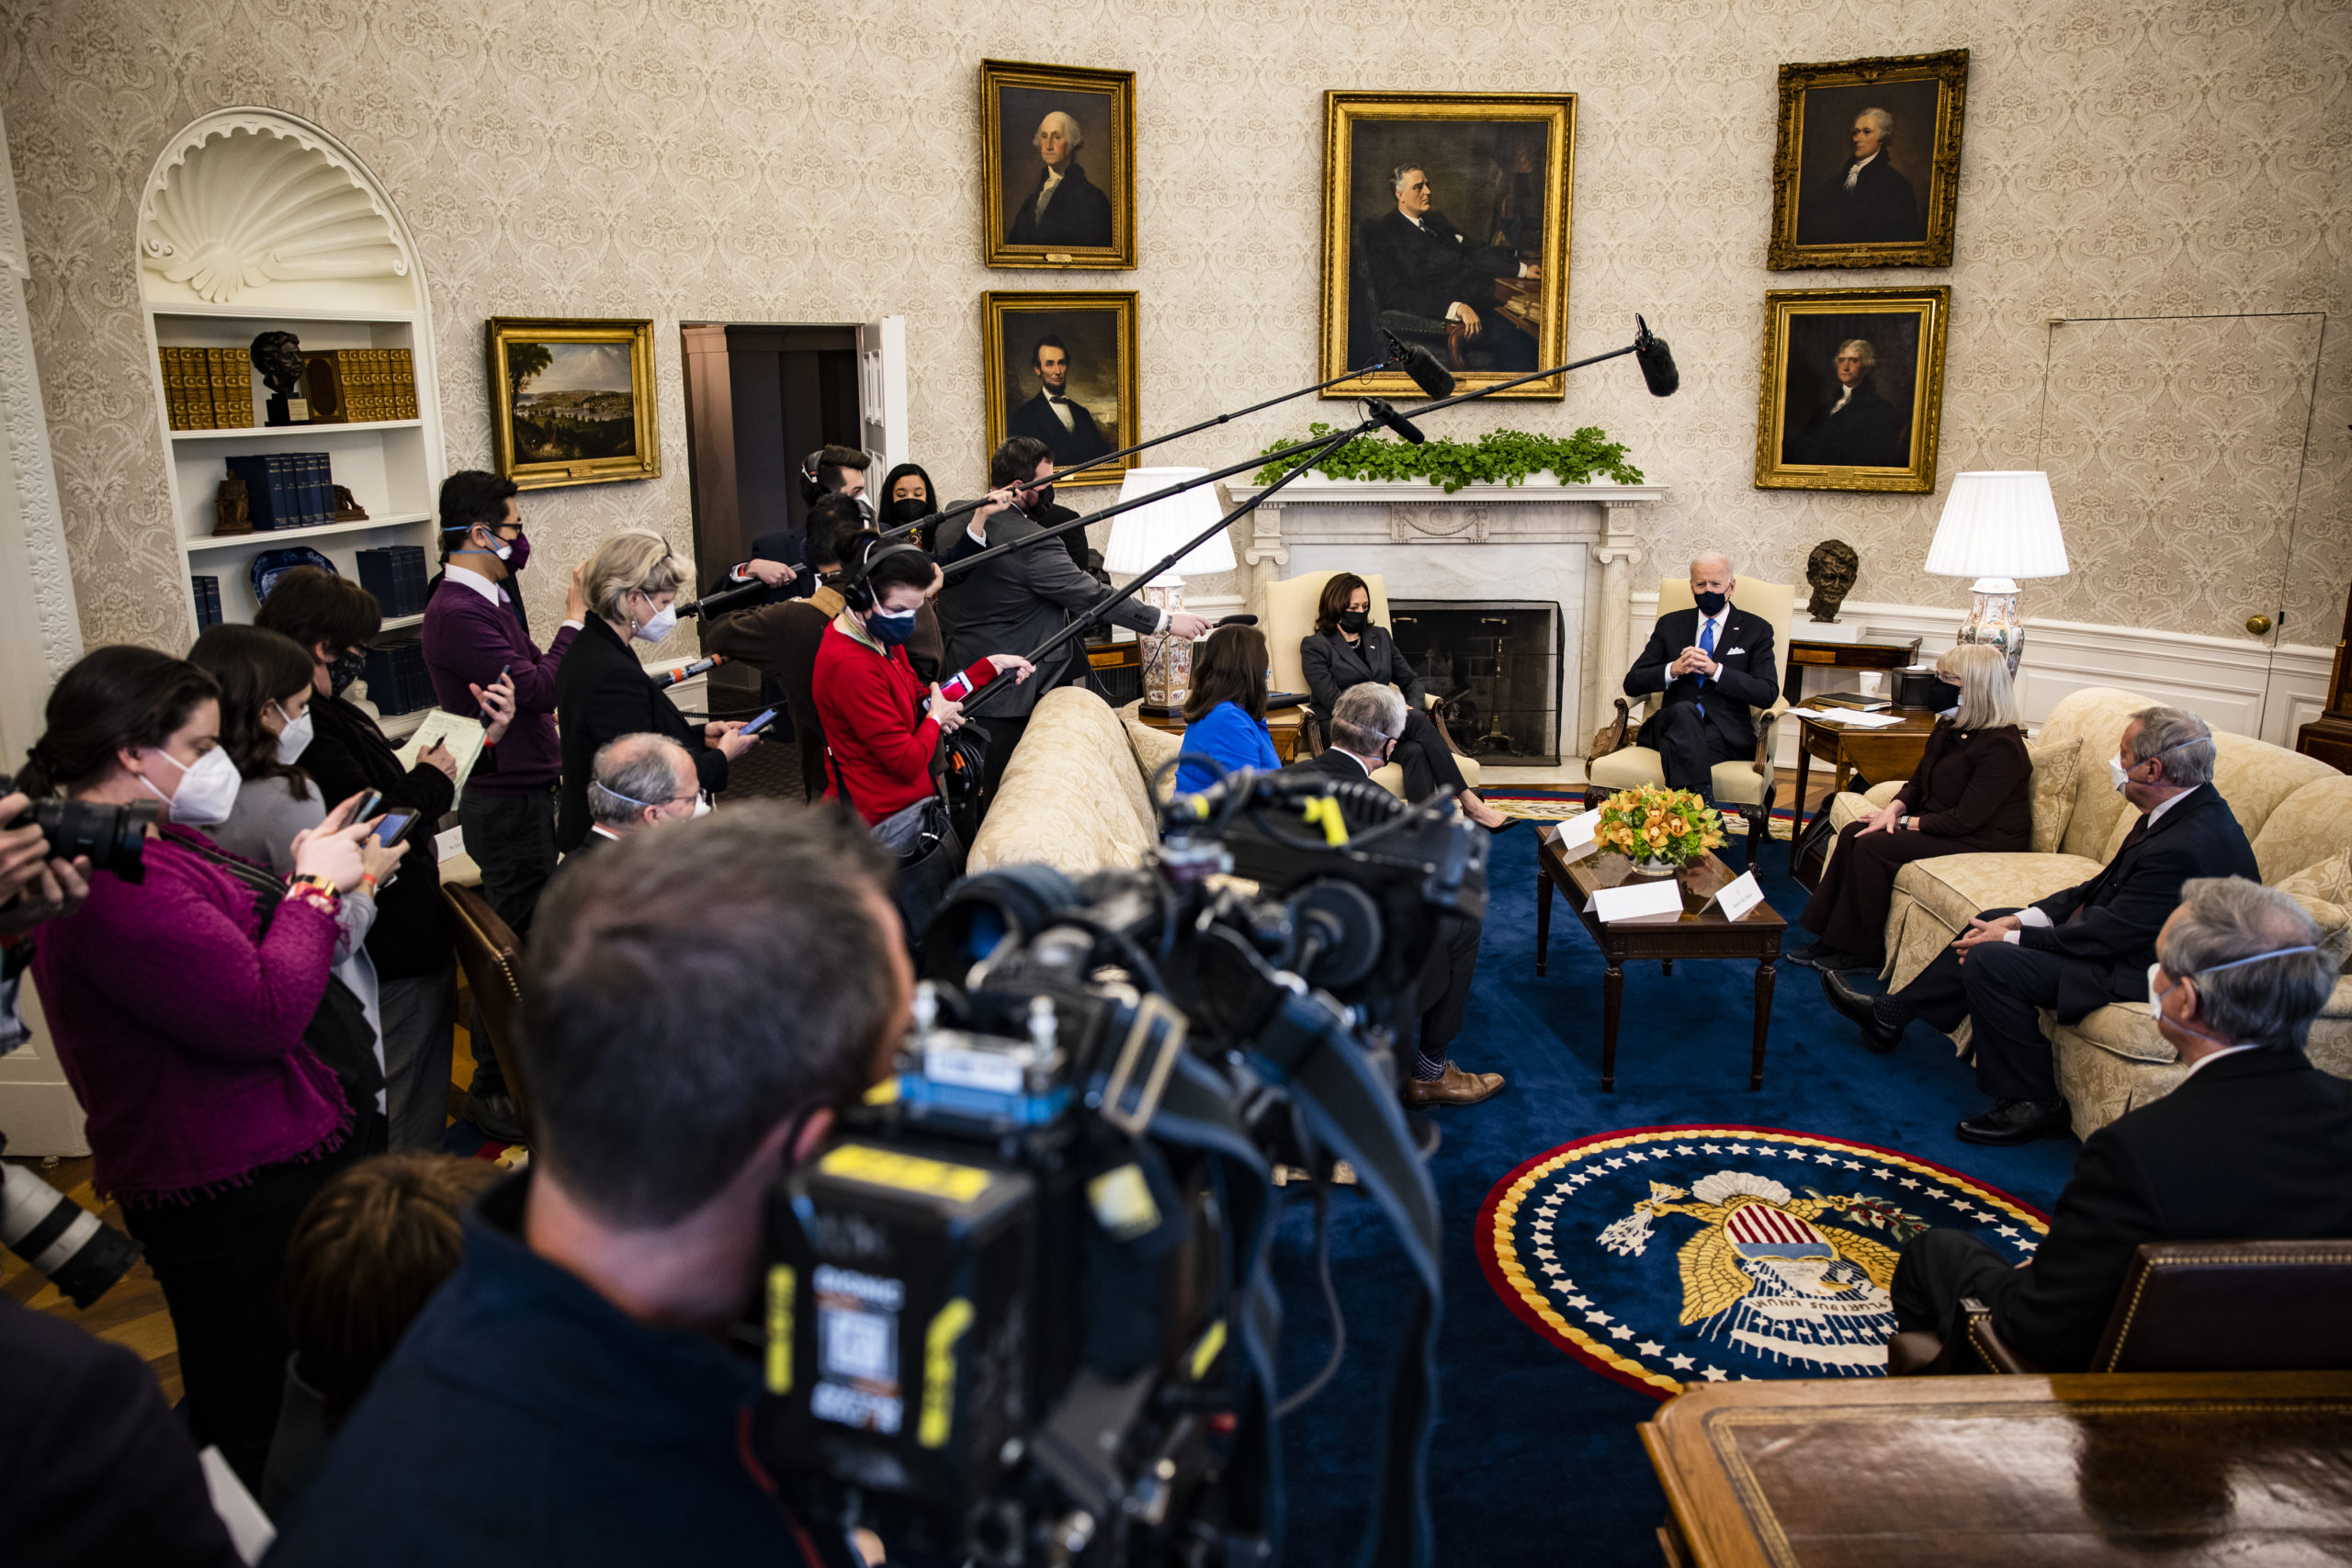 WASHINGTON, DC - MARCH 03: President Joe Biden holds a meeting on cancer with Vice President Kamala Harris and Sen. Patty Murray (D-WA) (3rd-R), Sen. Dick Durbin (D-IL) (2nd-R), Sen. Mike Crapo (R-ID) and other lawmakers in the Oval Office at the White House on March 3, 2021 in Washington, DC. (Photo by Samuel Corum/Getty Images)